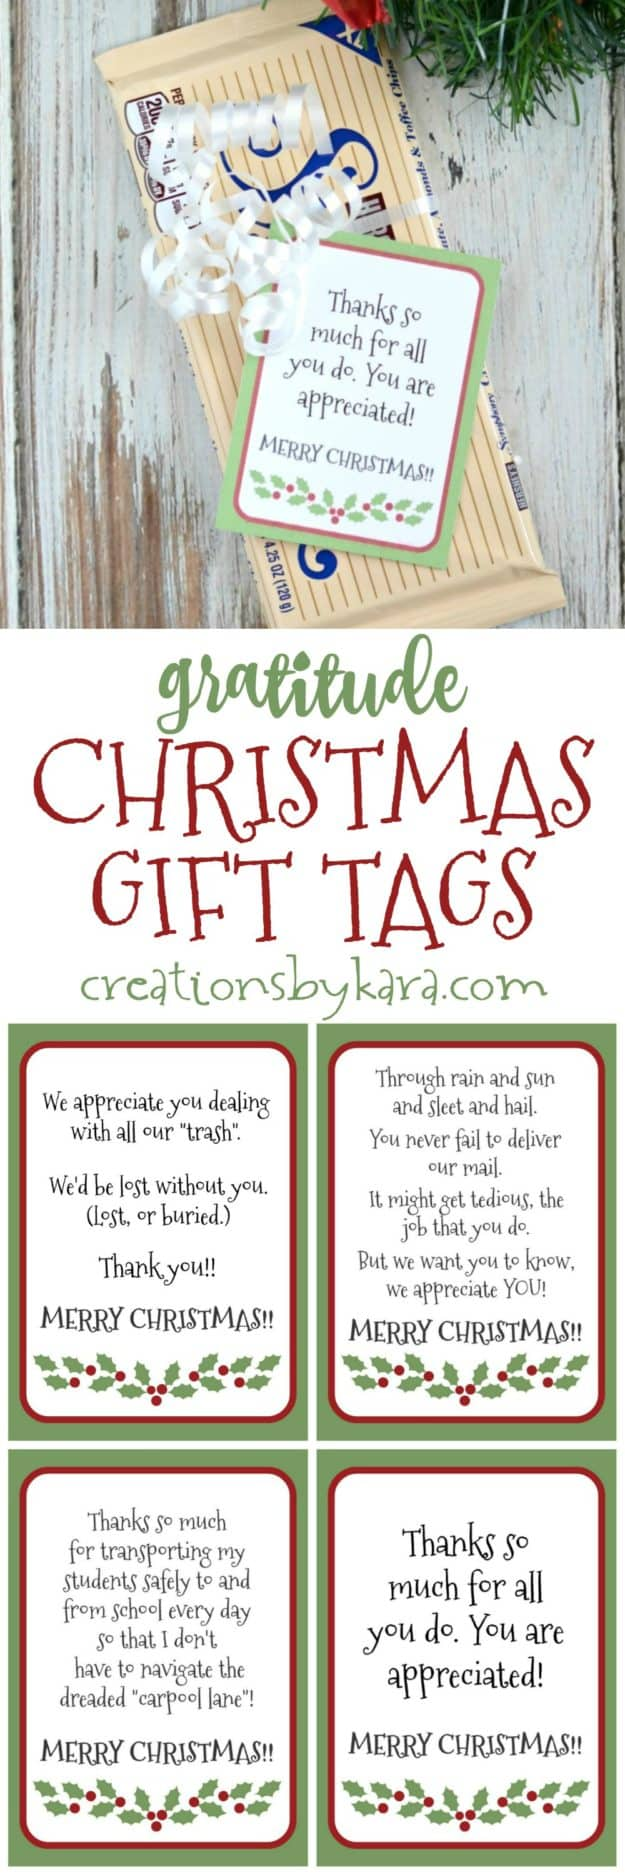 Free printable gratitude Christmas gift tags  collage